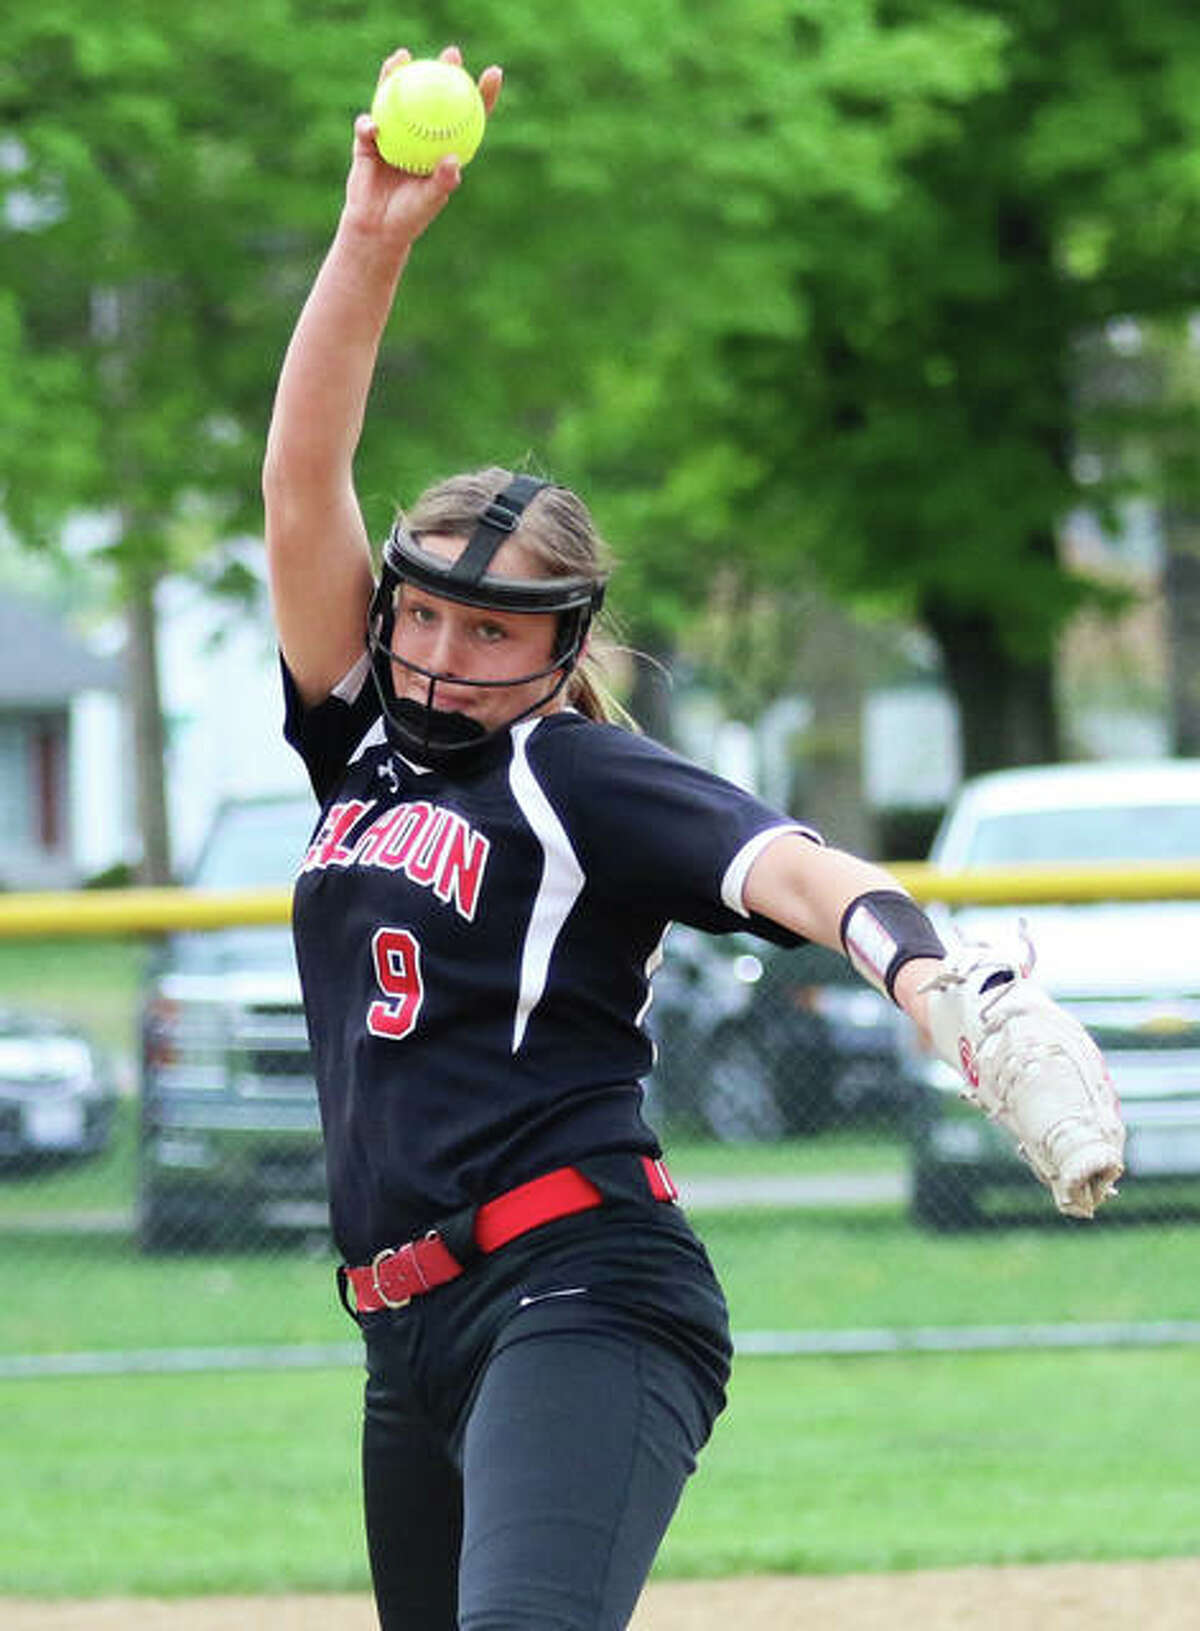 After averaging nearly two strikeouts per inning in her two seasons as Calhoun's ace, Sydney Baalman will continue her softball career at SIUE.